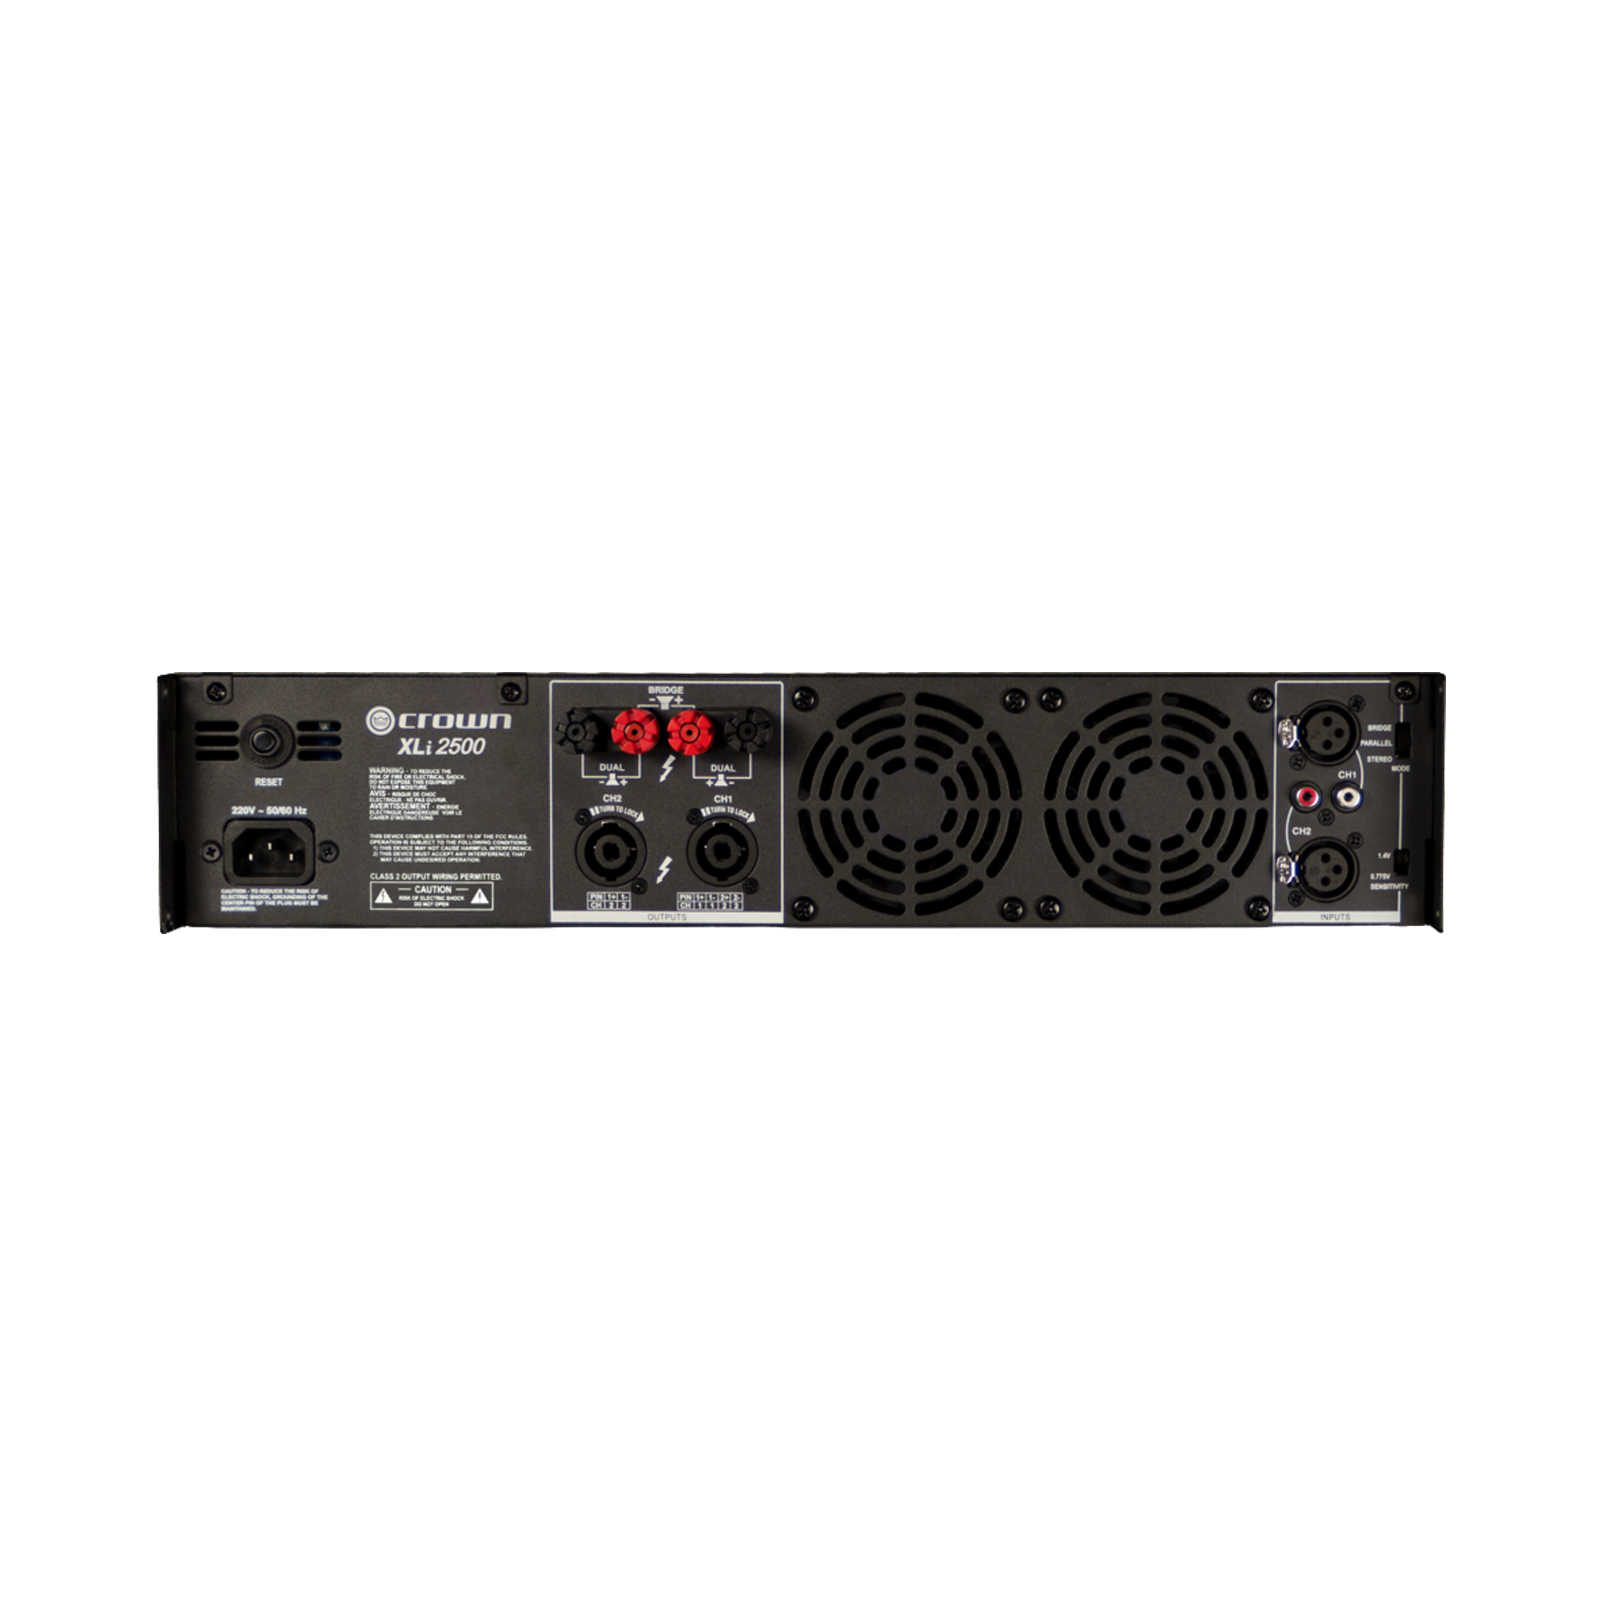 XLi 2500 - Grey - Two-channel, 750W @ 4Ω power amplifier - Back